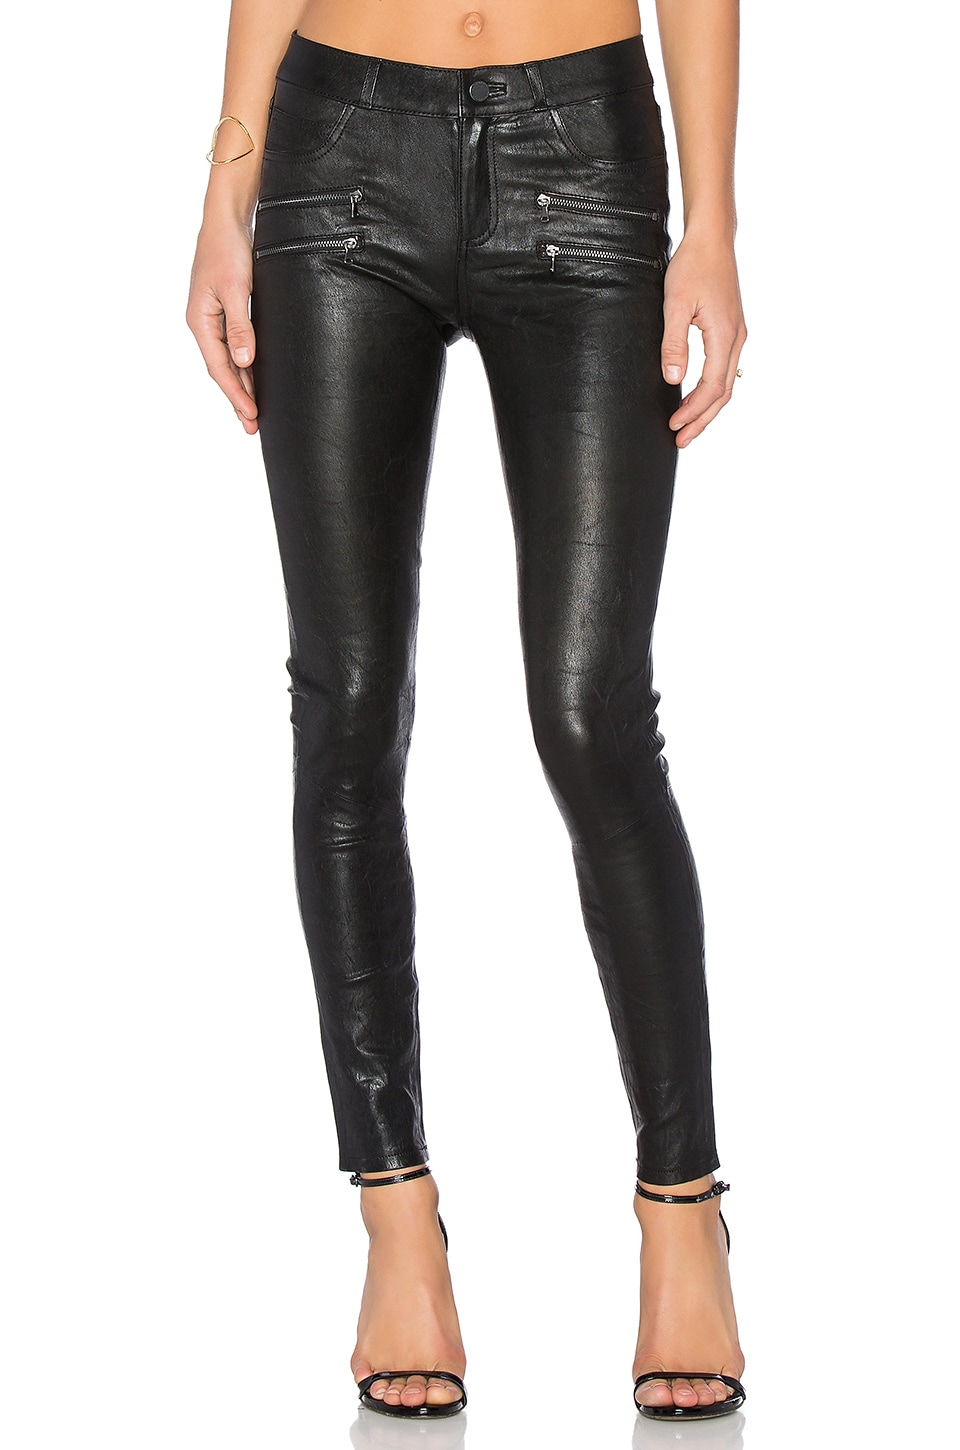 PAIGE Edgemont Leather Pant in Black